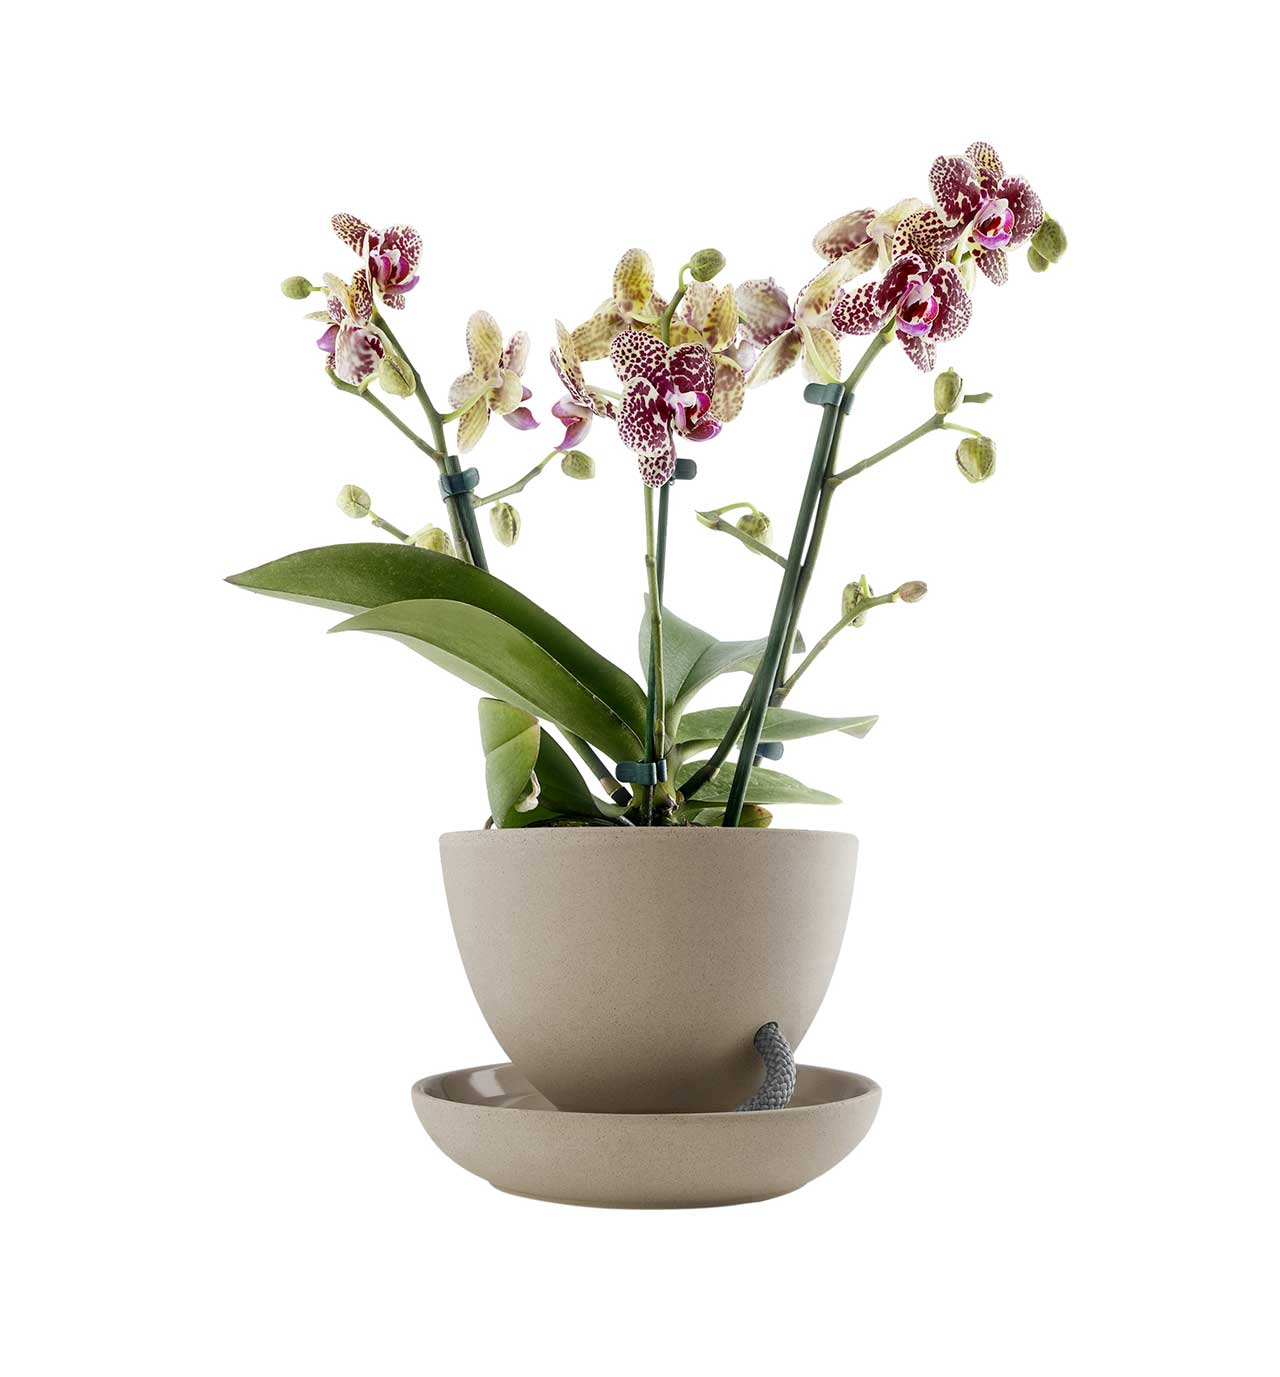 sand colored self-watering flowerpot with orchid planted in it